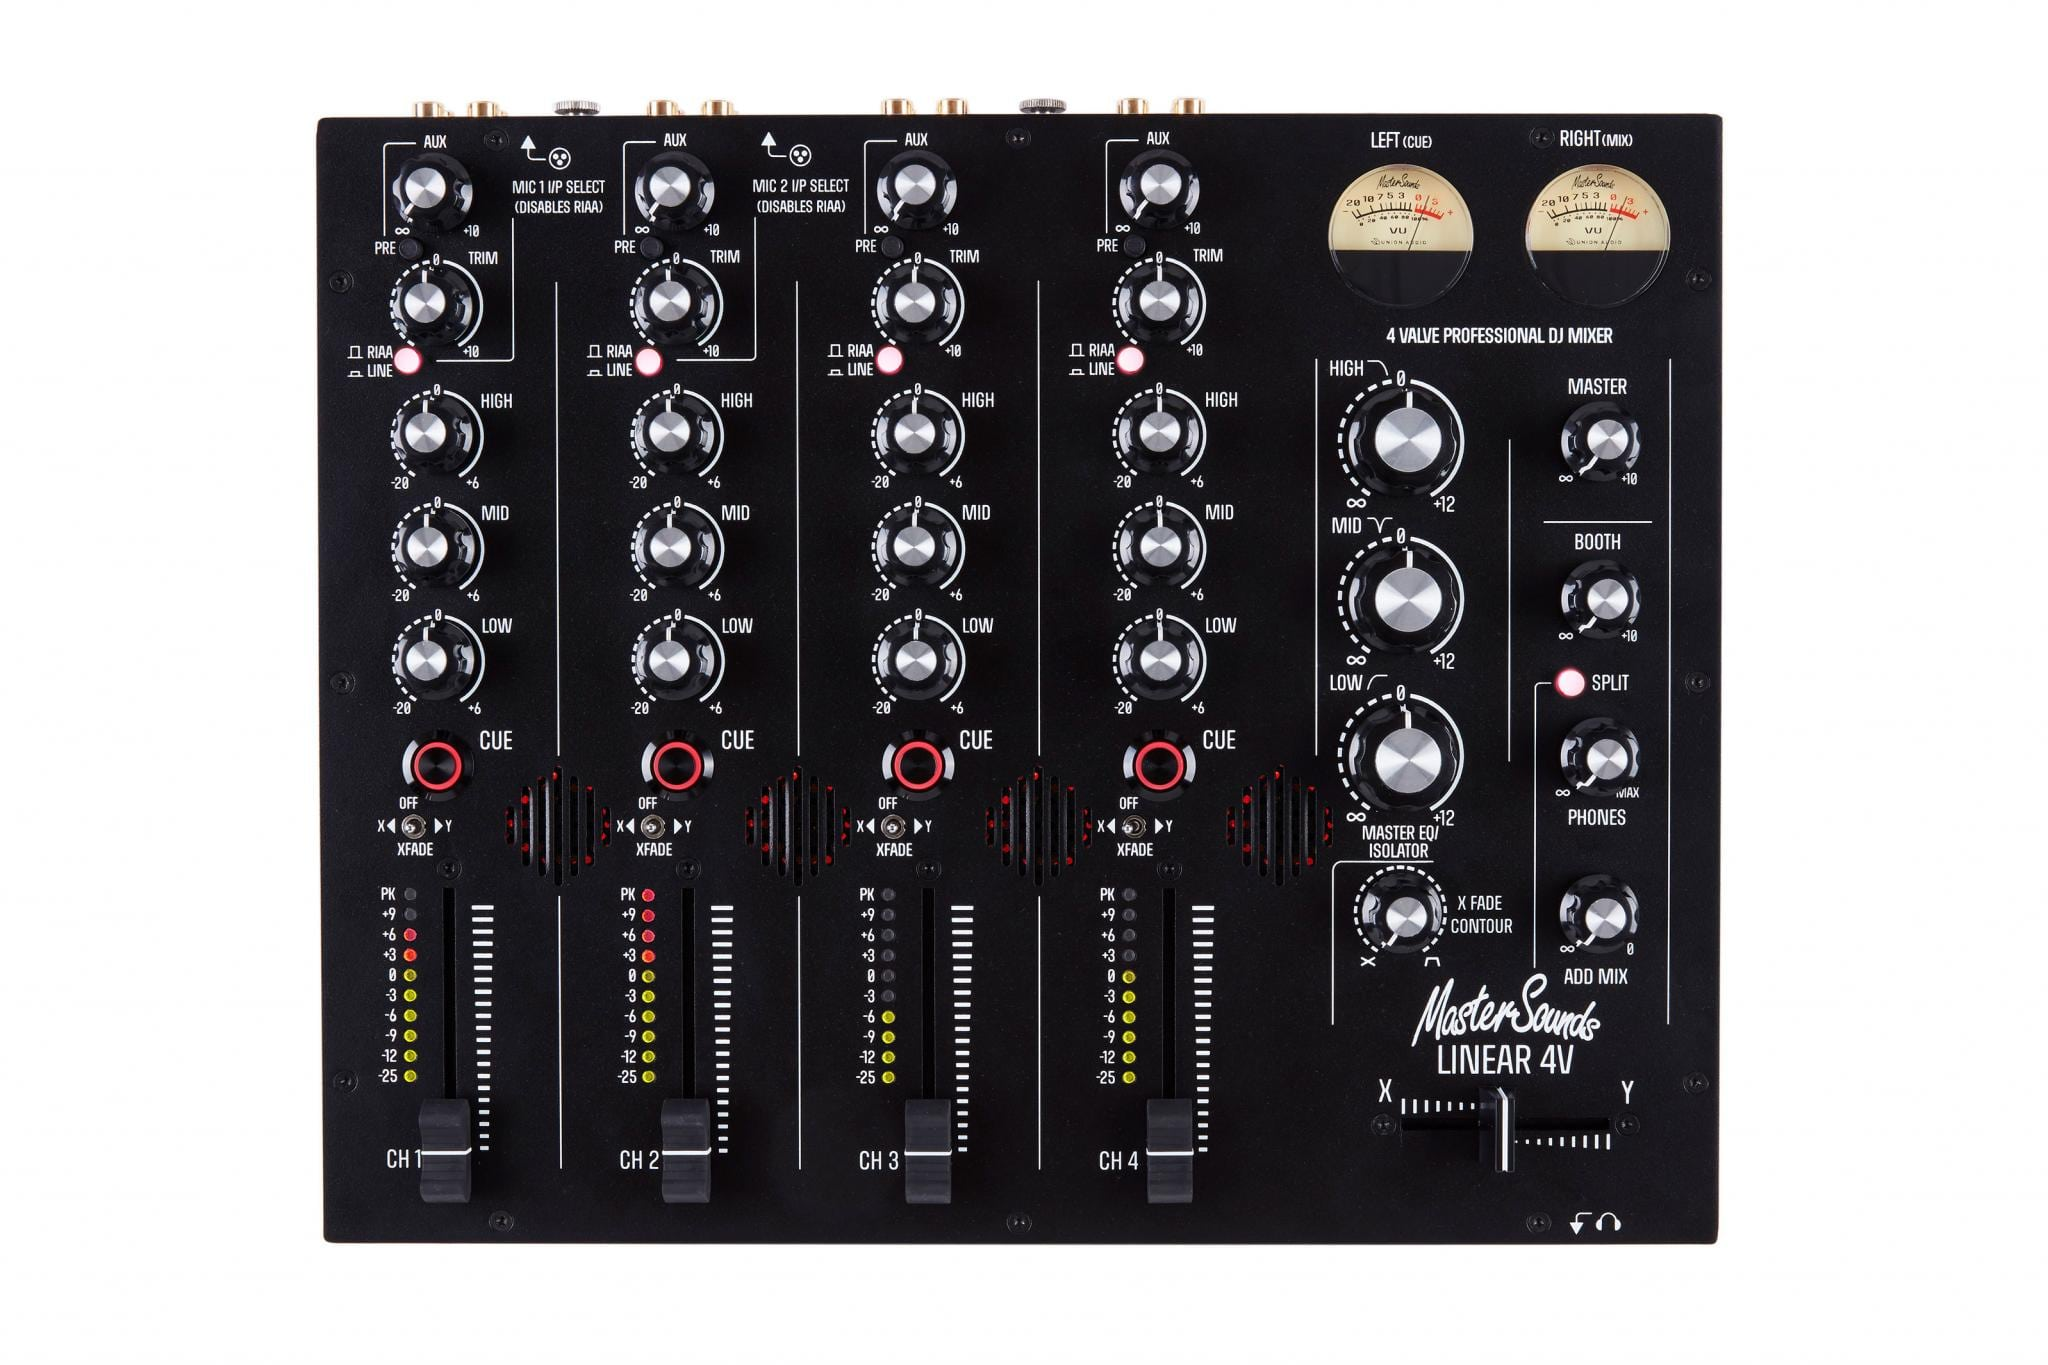 Mastersounds Linear 4V rotary mixer